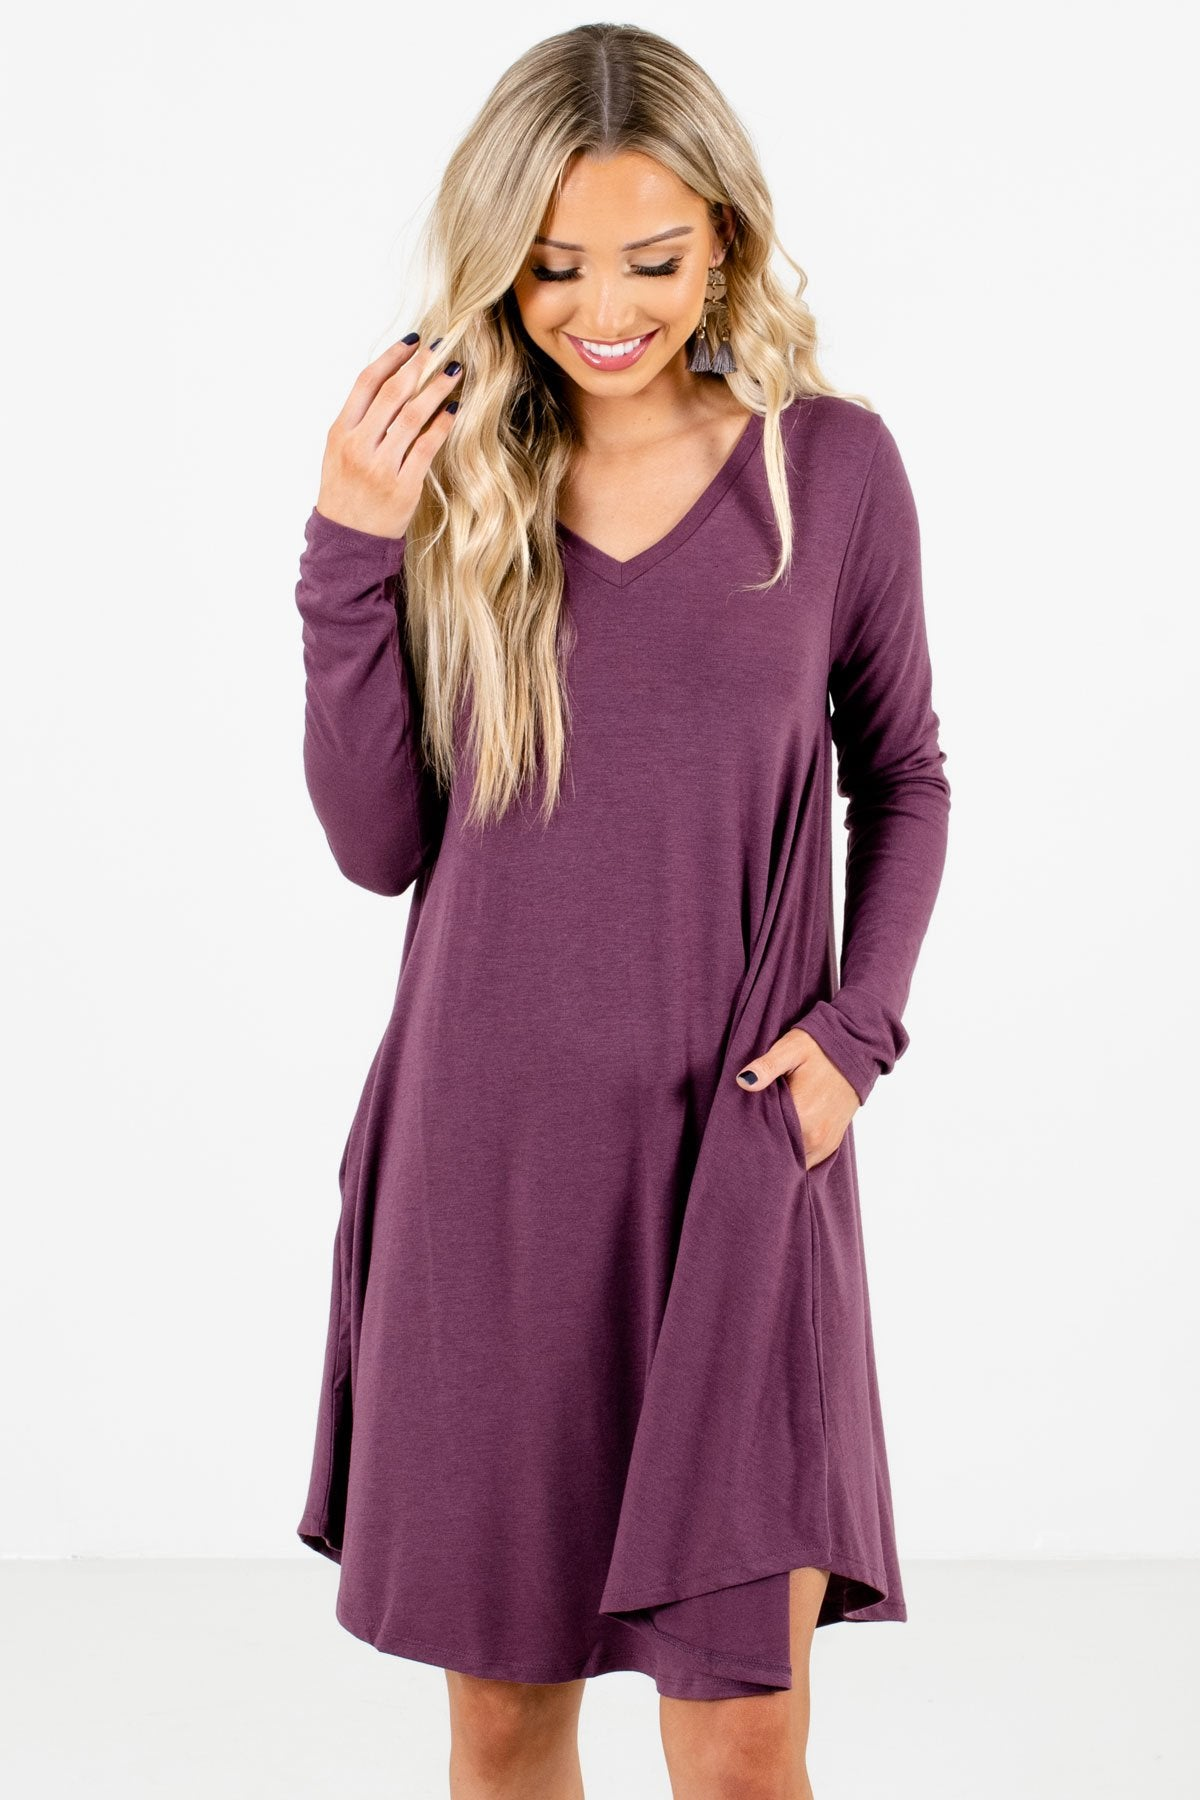 Purple Long Sleeve Boutique Mini Dresses for Women